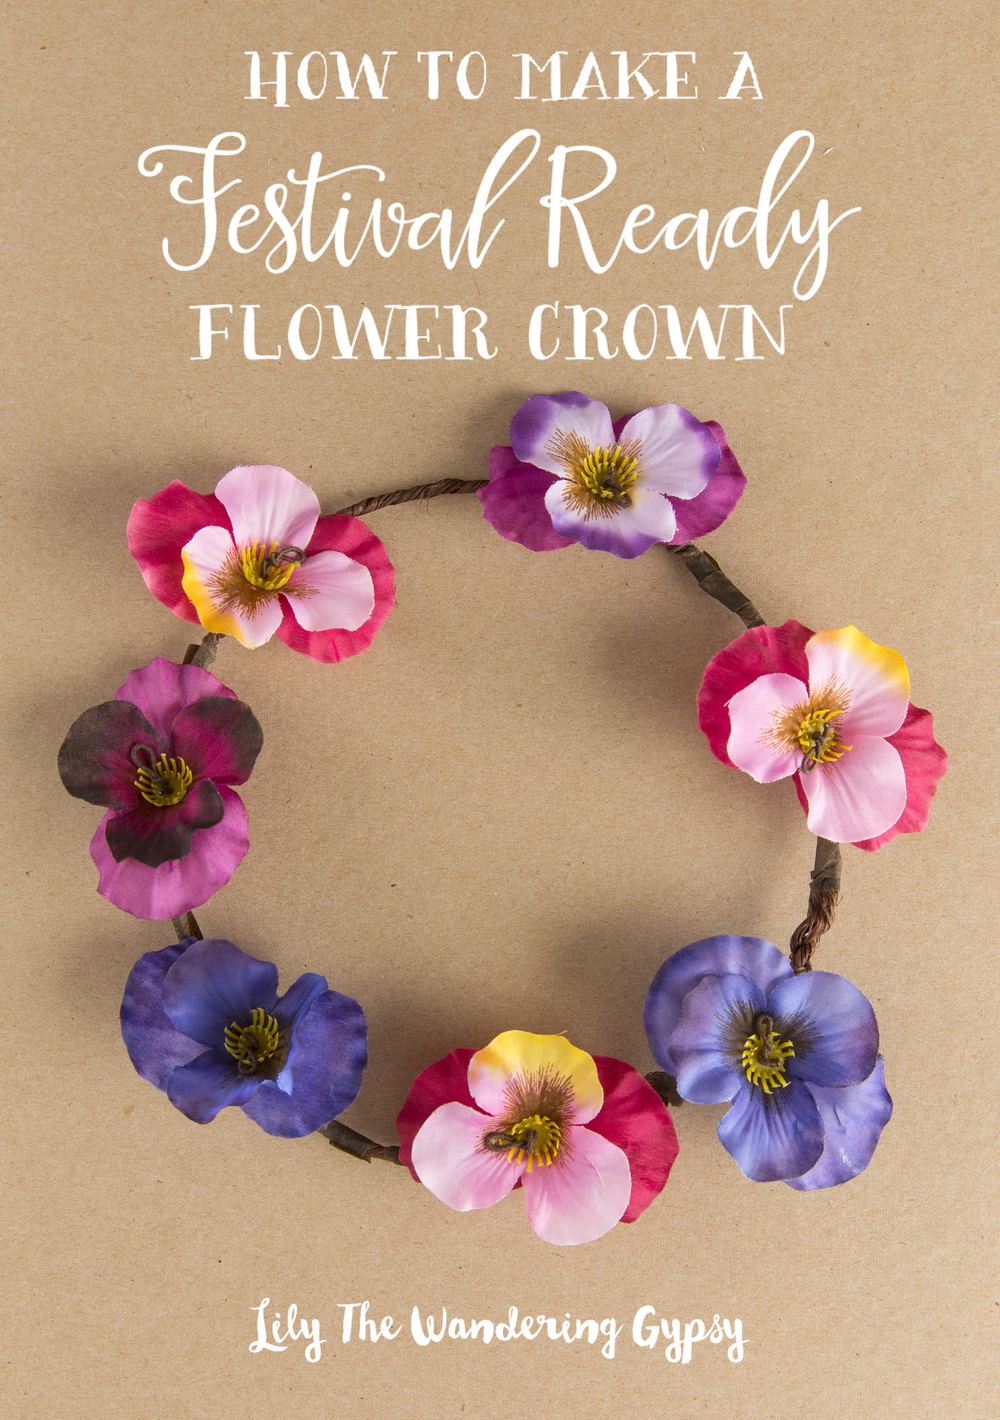 How To Make A Festival-Ready Flower Crown